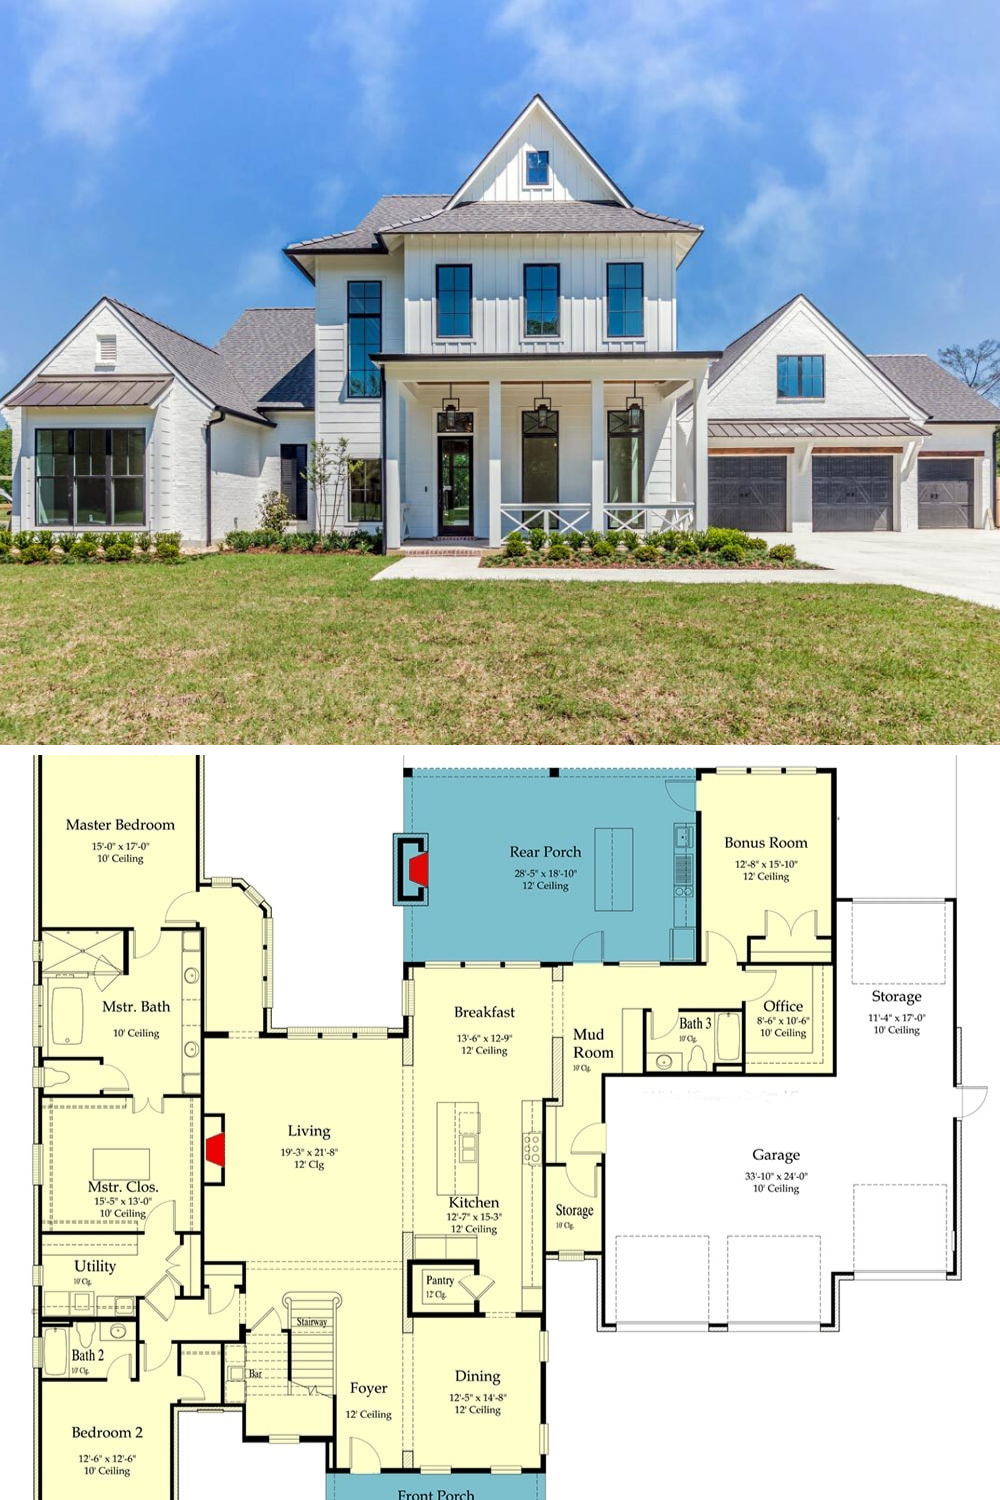 Two Story 5 Bedroom Southern Home With Rustic Interior Elements Floor Plan Mansion Floor Plan Southern House Plan Southern House Plans